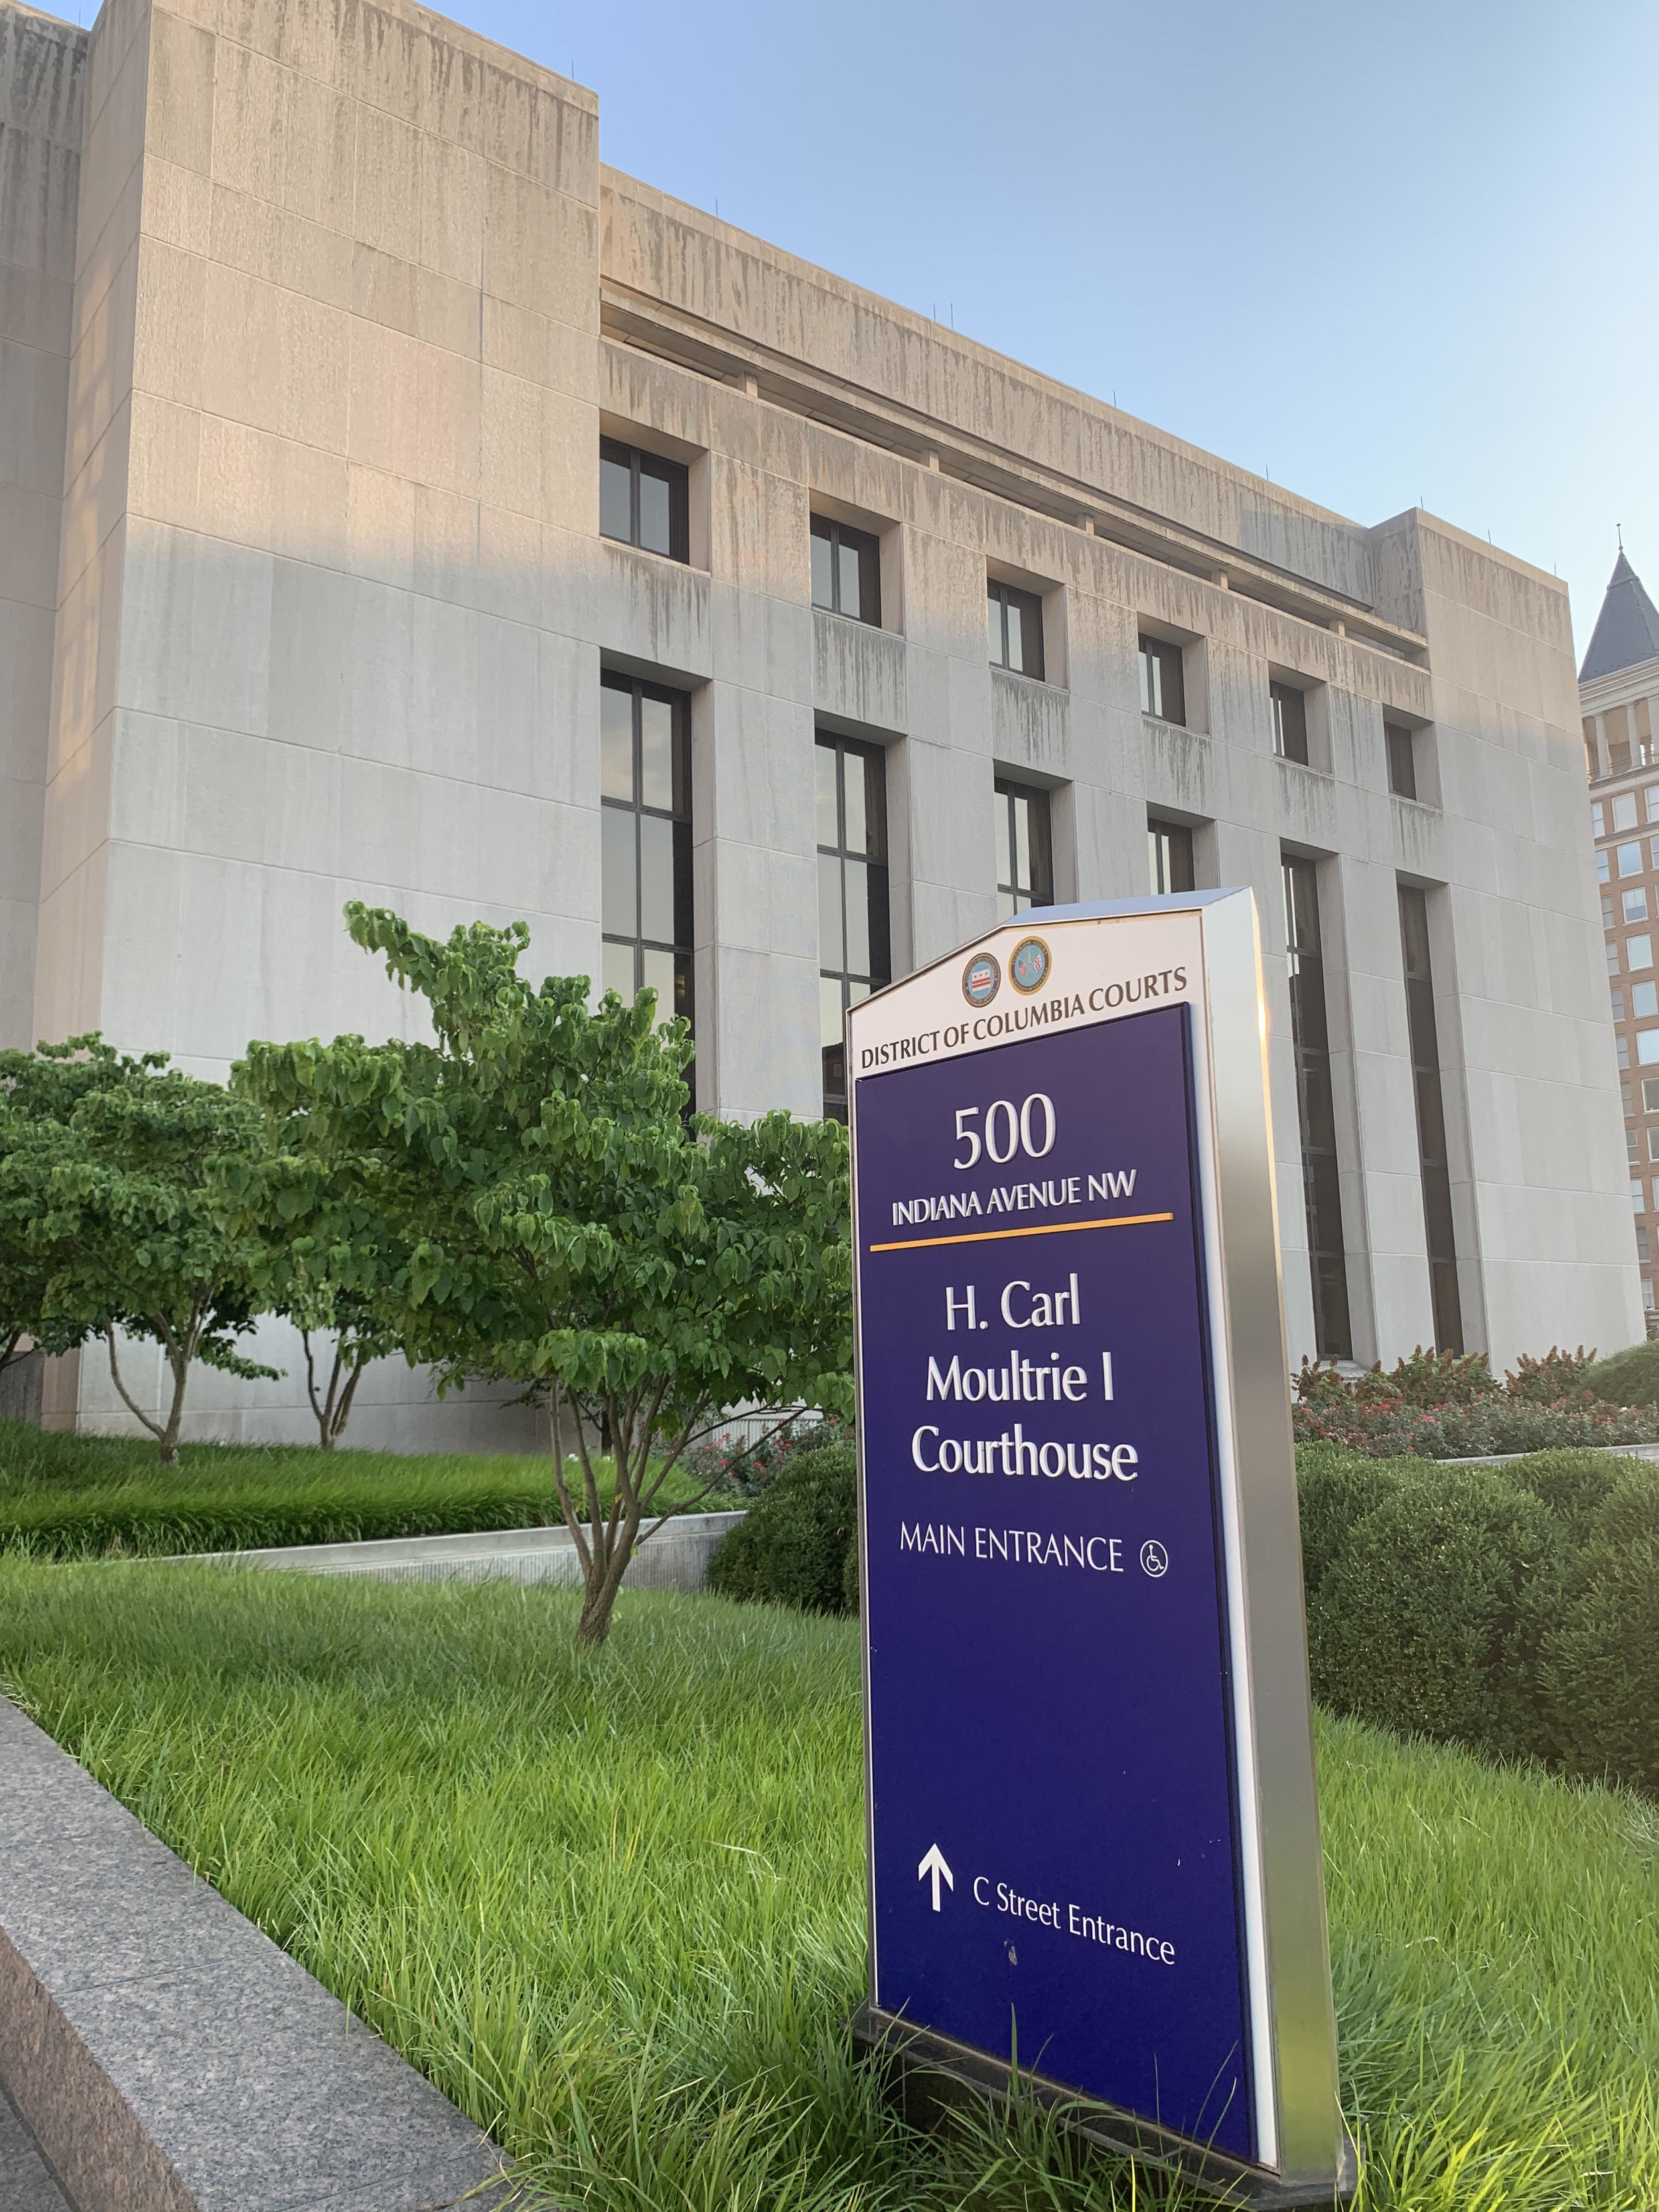 The outside of the District's H. Carl Moultrie Courthouse. (Credit: The Lab @ DC)